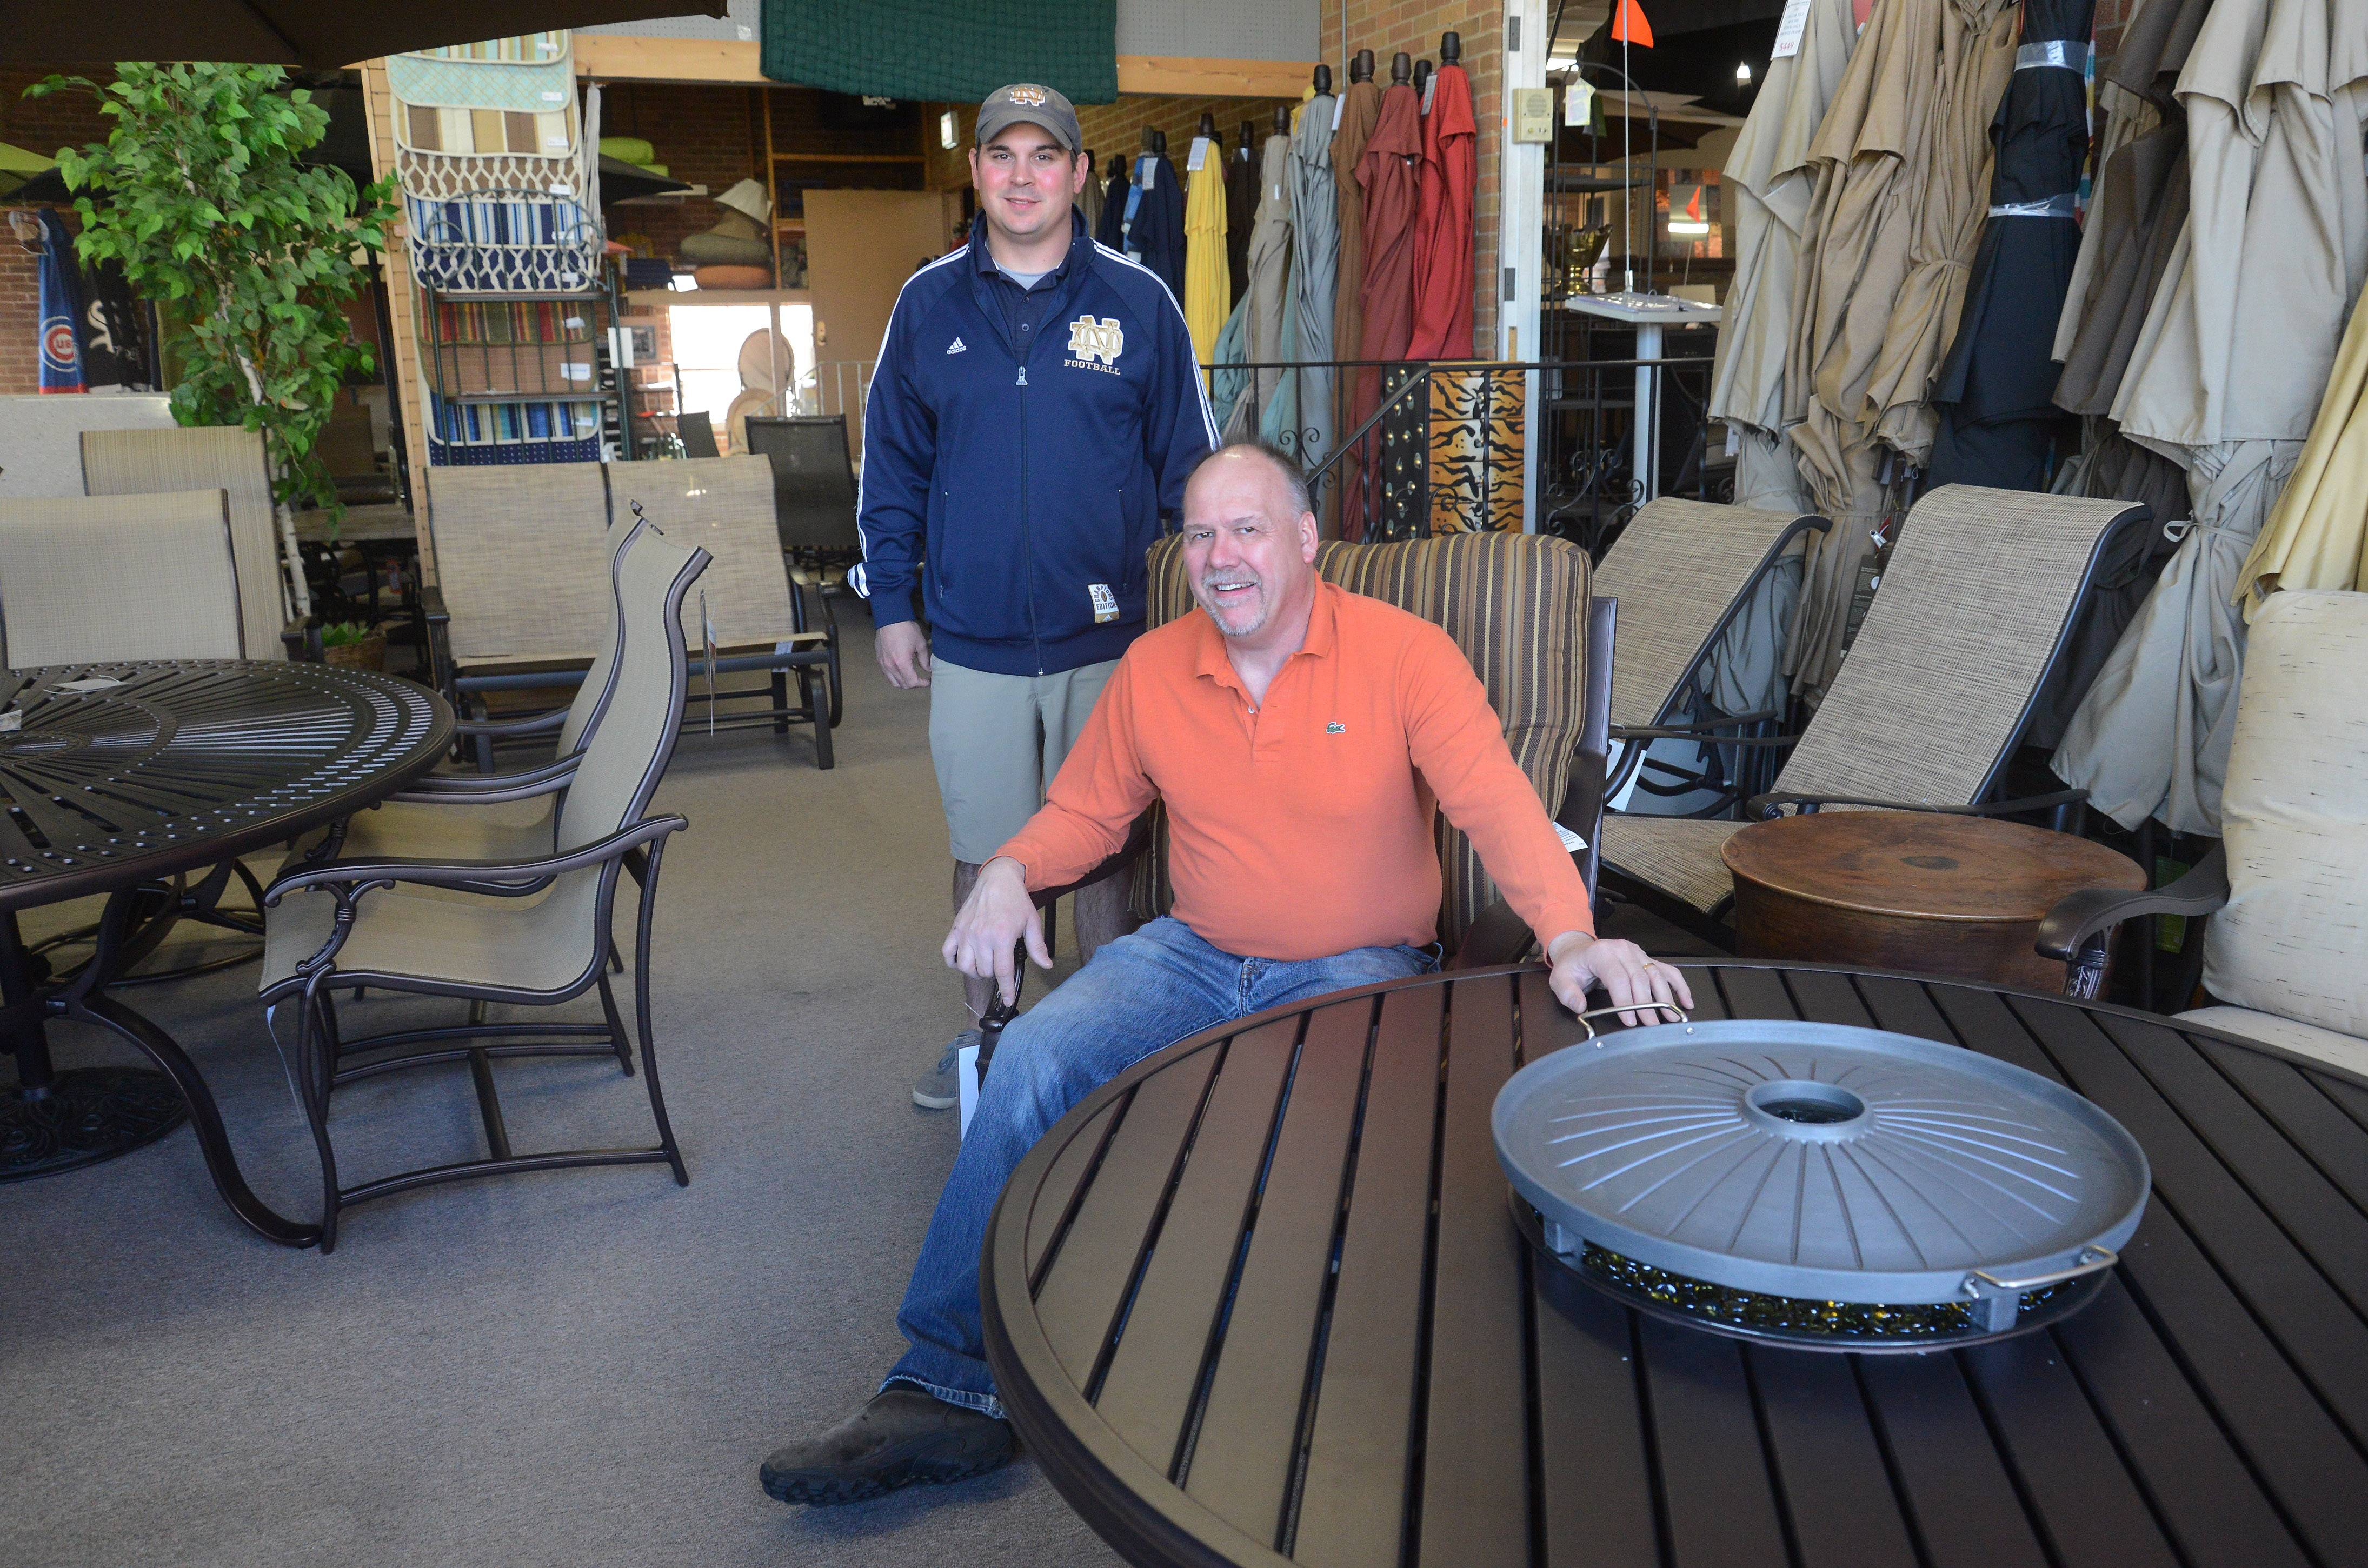 Northwest Metalcraft owner Dan Mayer, foreground, and his nephew Zac Selleck sell and install fireplaces, fire pits and outdoor furniture at the Arlington Heights business.